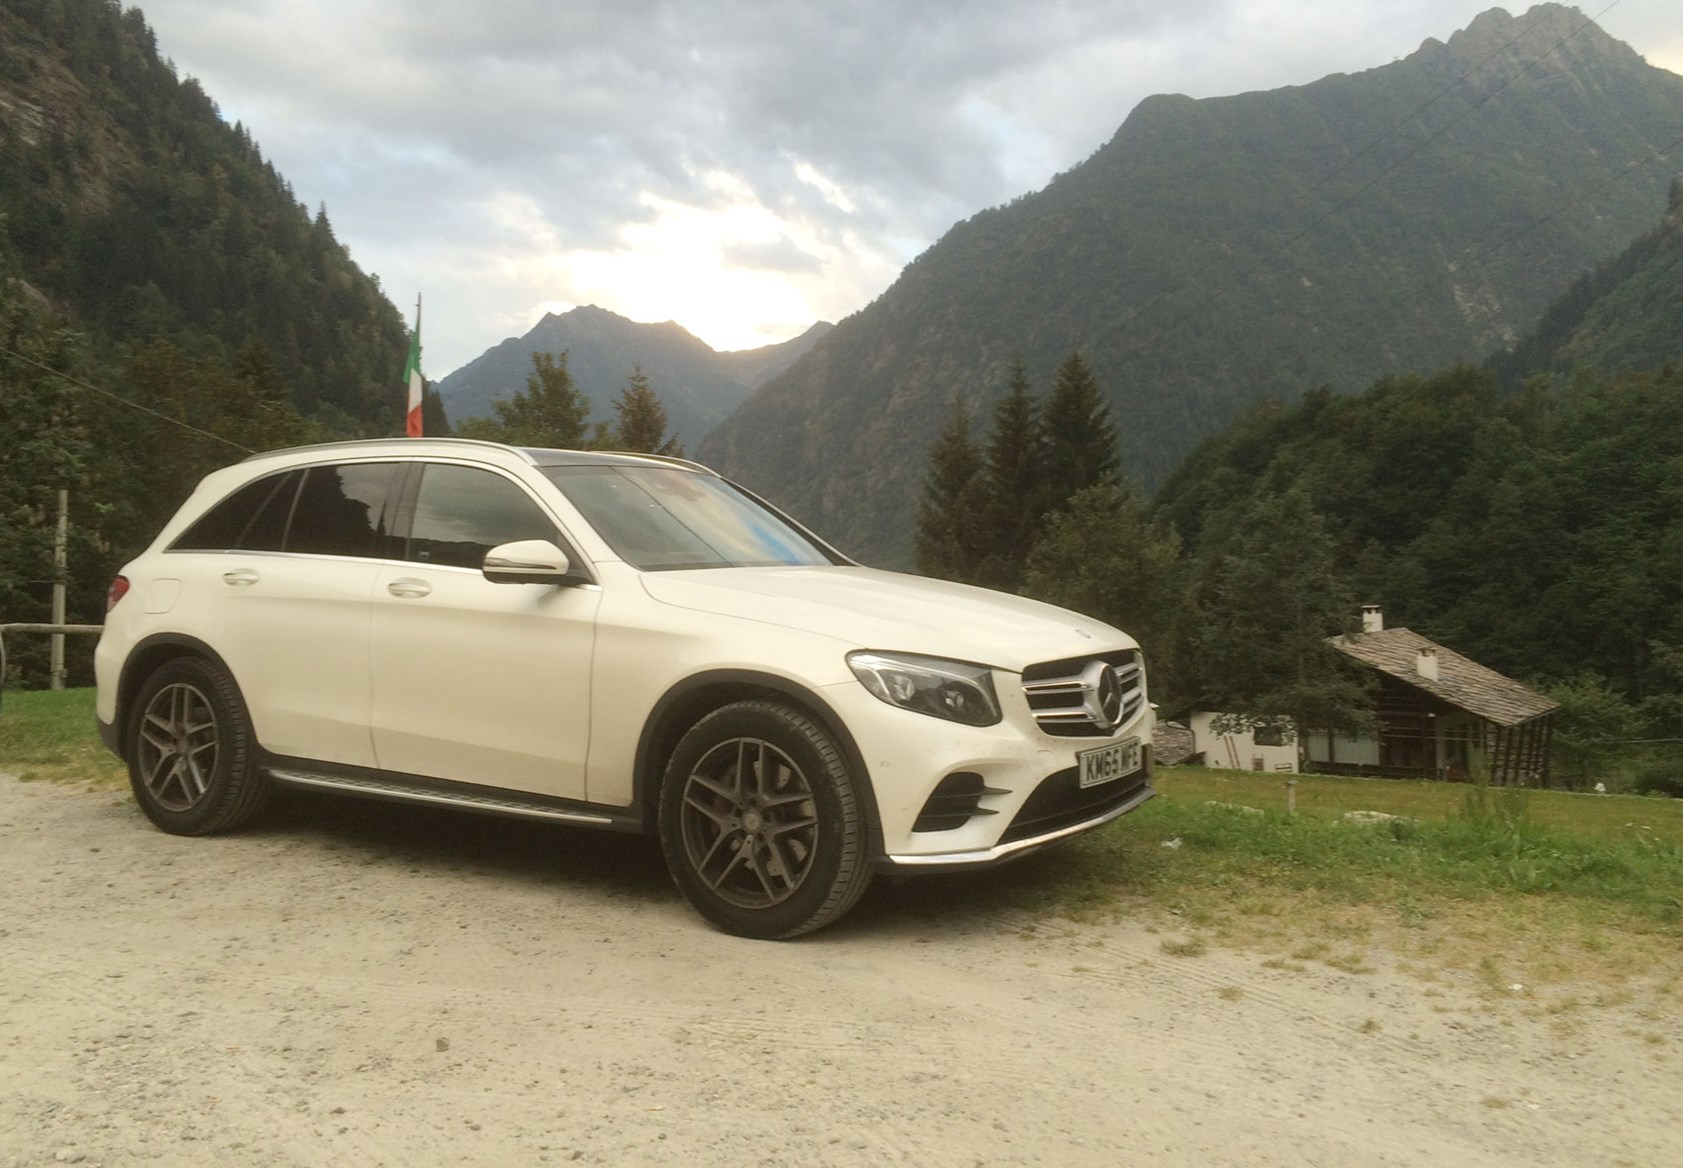 Mercedes-Benz GLC in the Aosta Valley, Italy